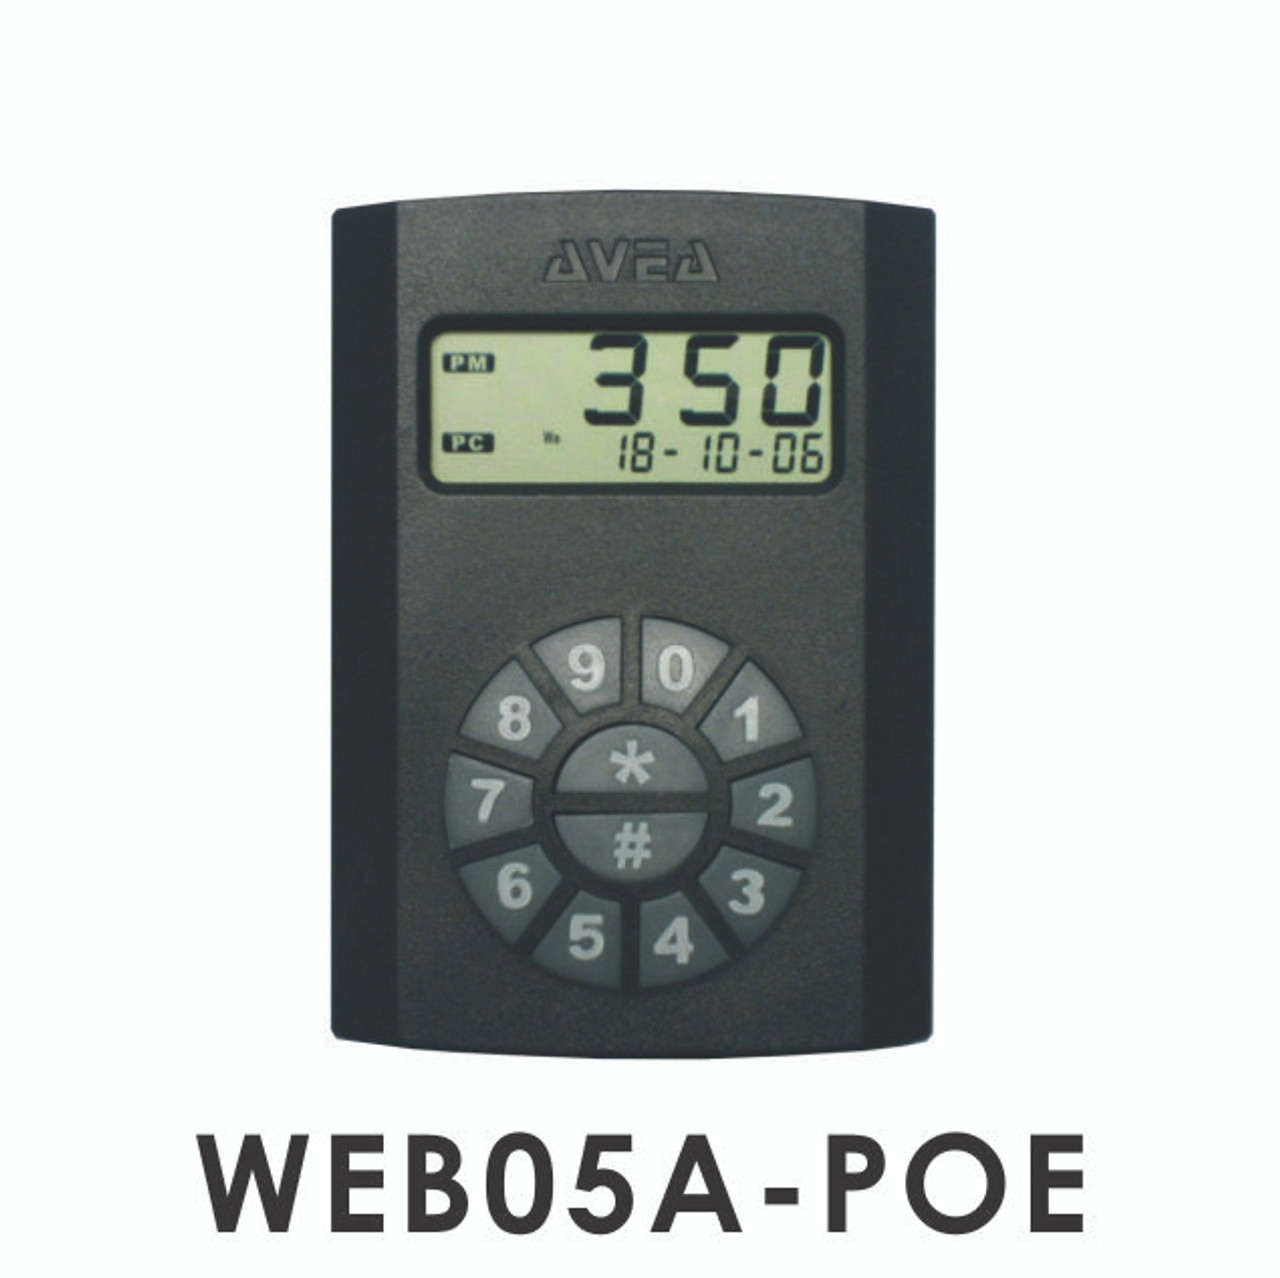 WEB05A iProx 125 kHz cloud based HTTP Ethernet Web Client RFID Reader V2 0  with POE power injector